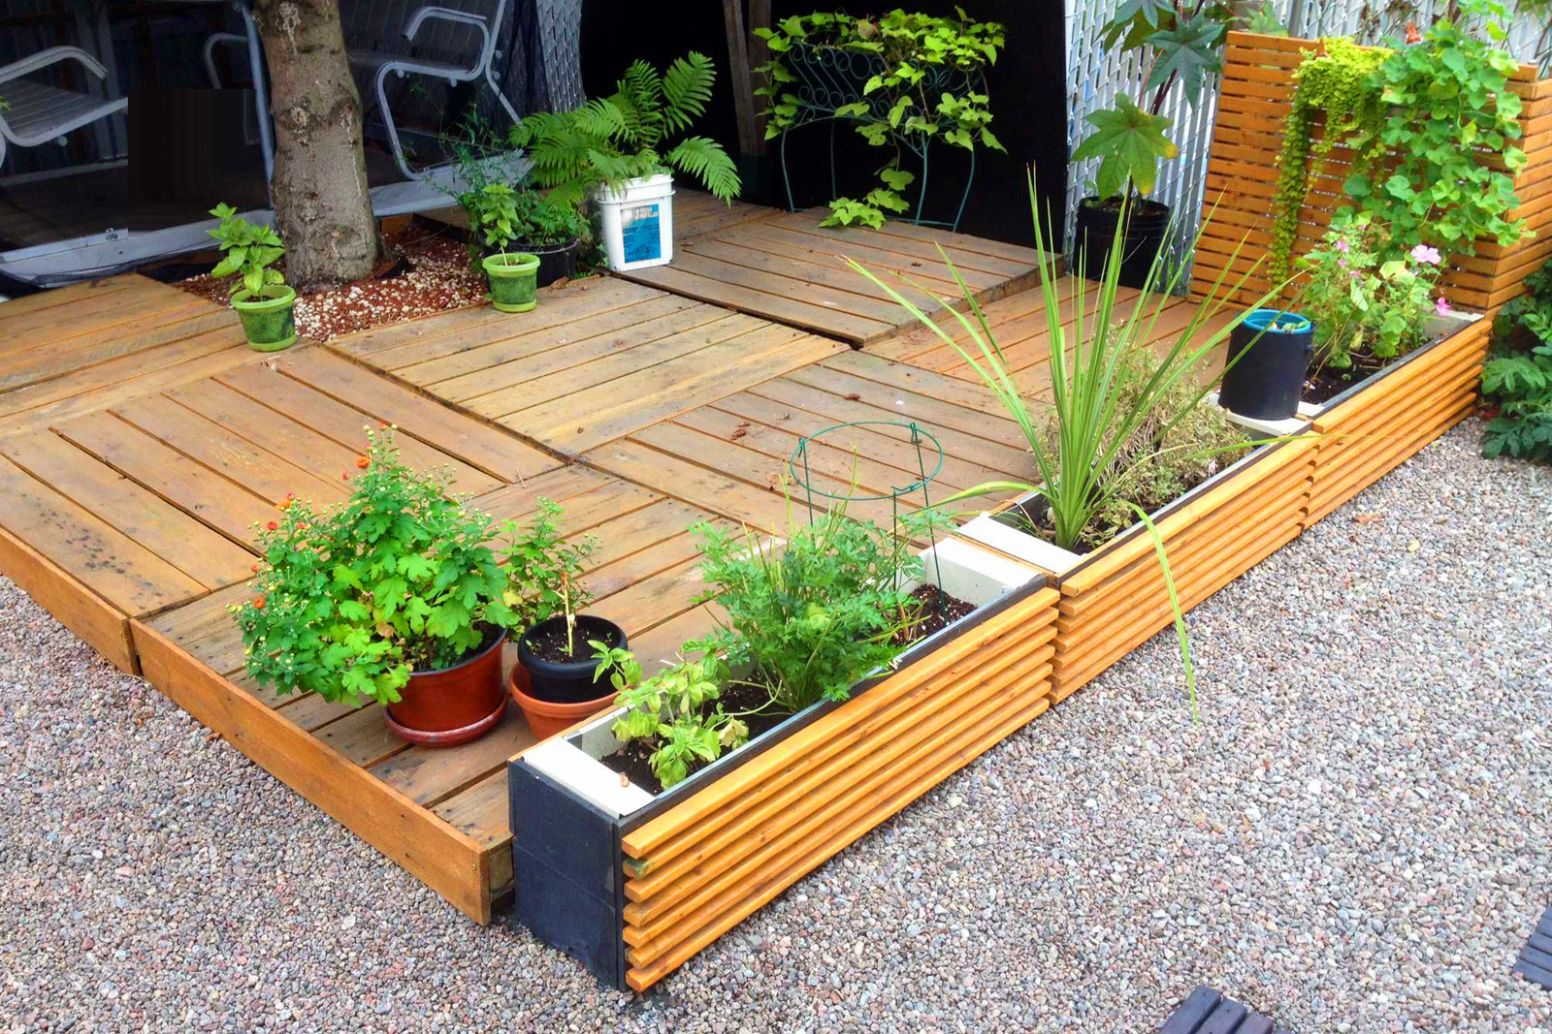 12 Simple And Easy Landscaping Ideas | HouseLogic - backyard ideas under 5000